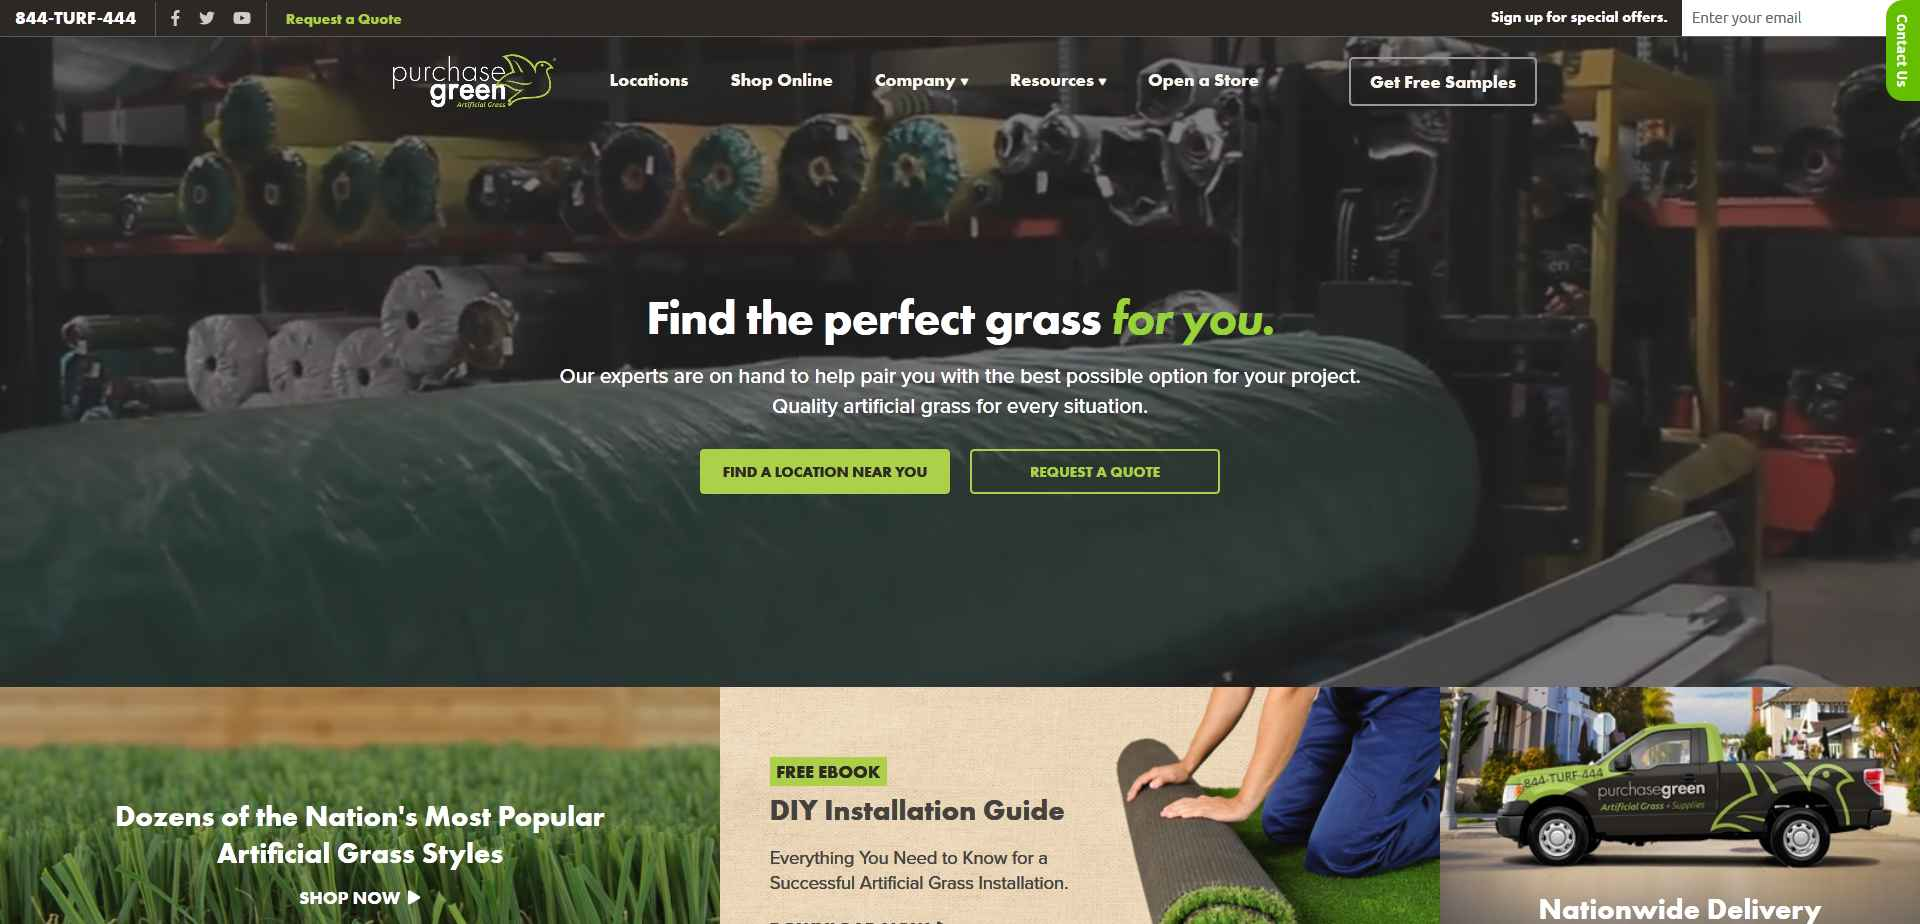 Purchase Green Case Study